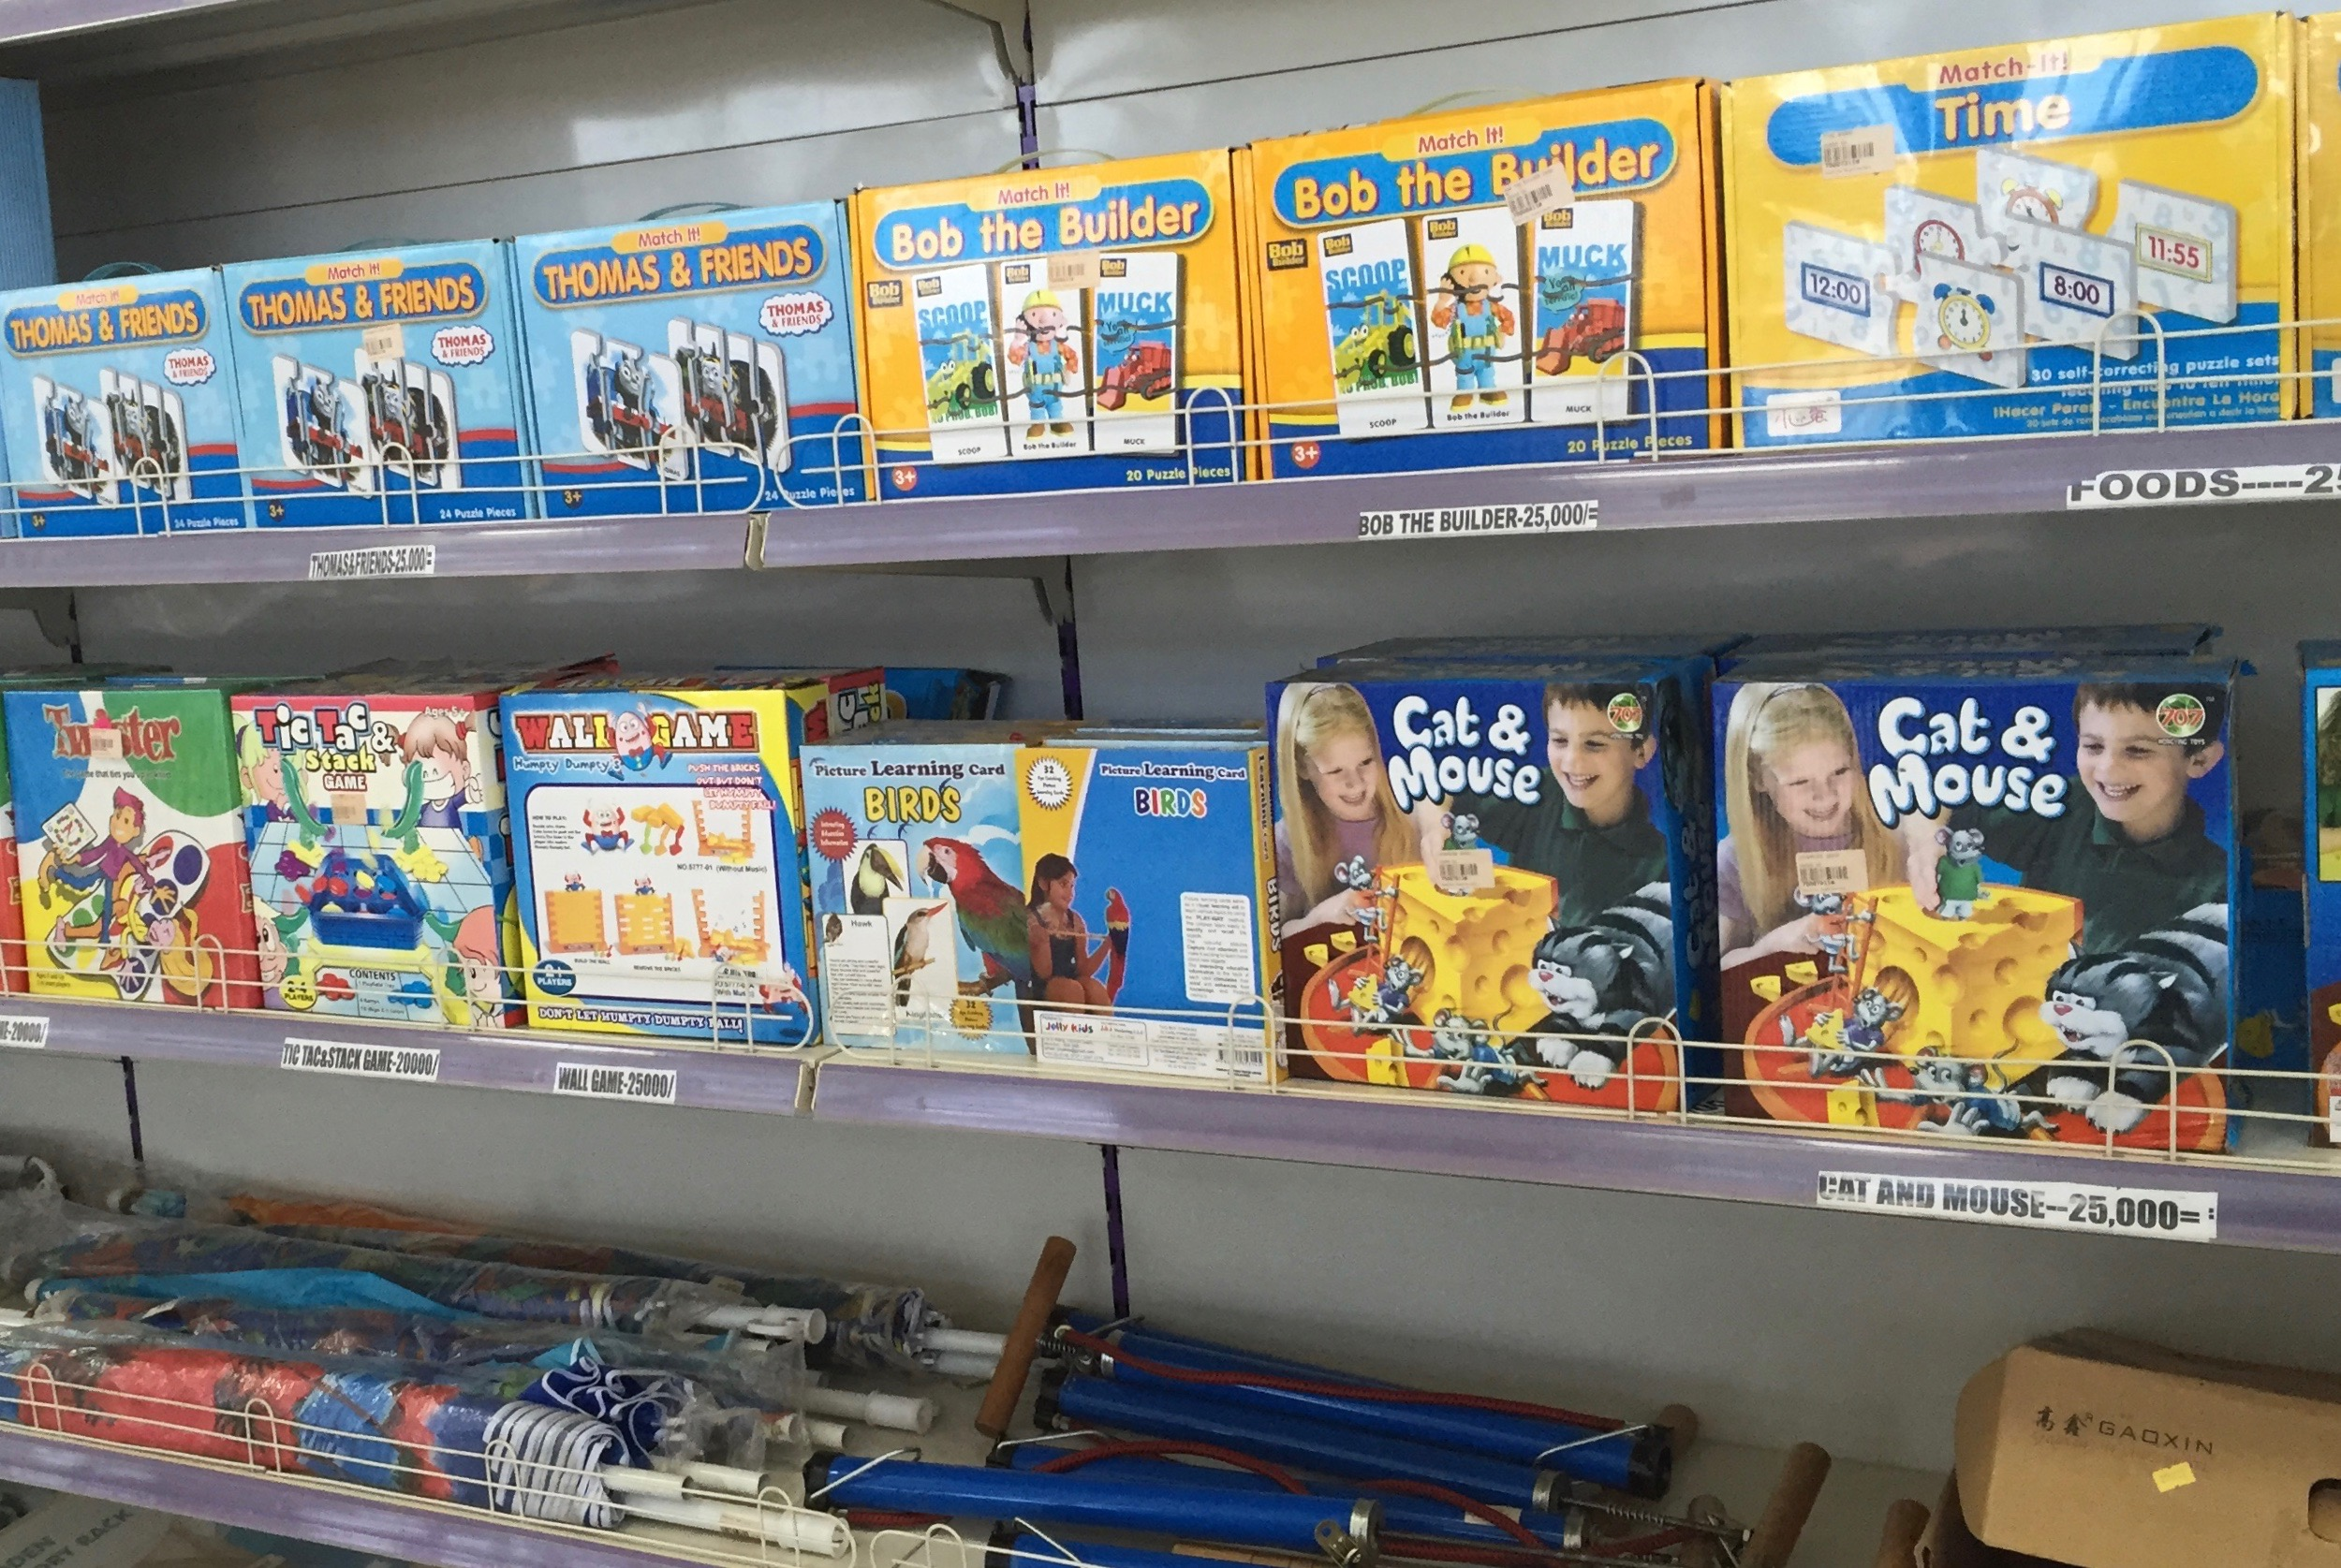 Slim pickings: Twister and Cat & Mouse make up the total games available at this department store we visited.